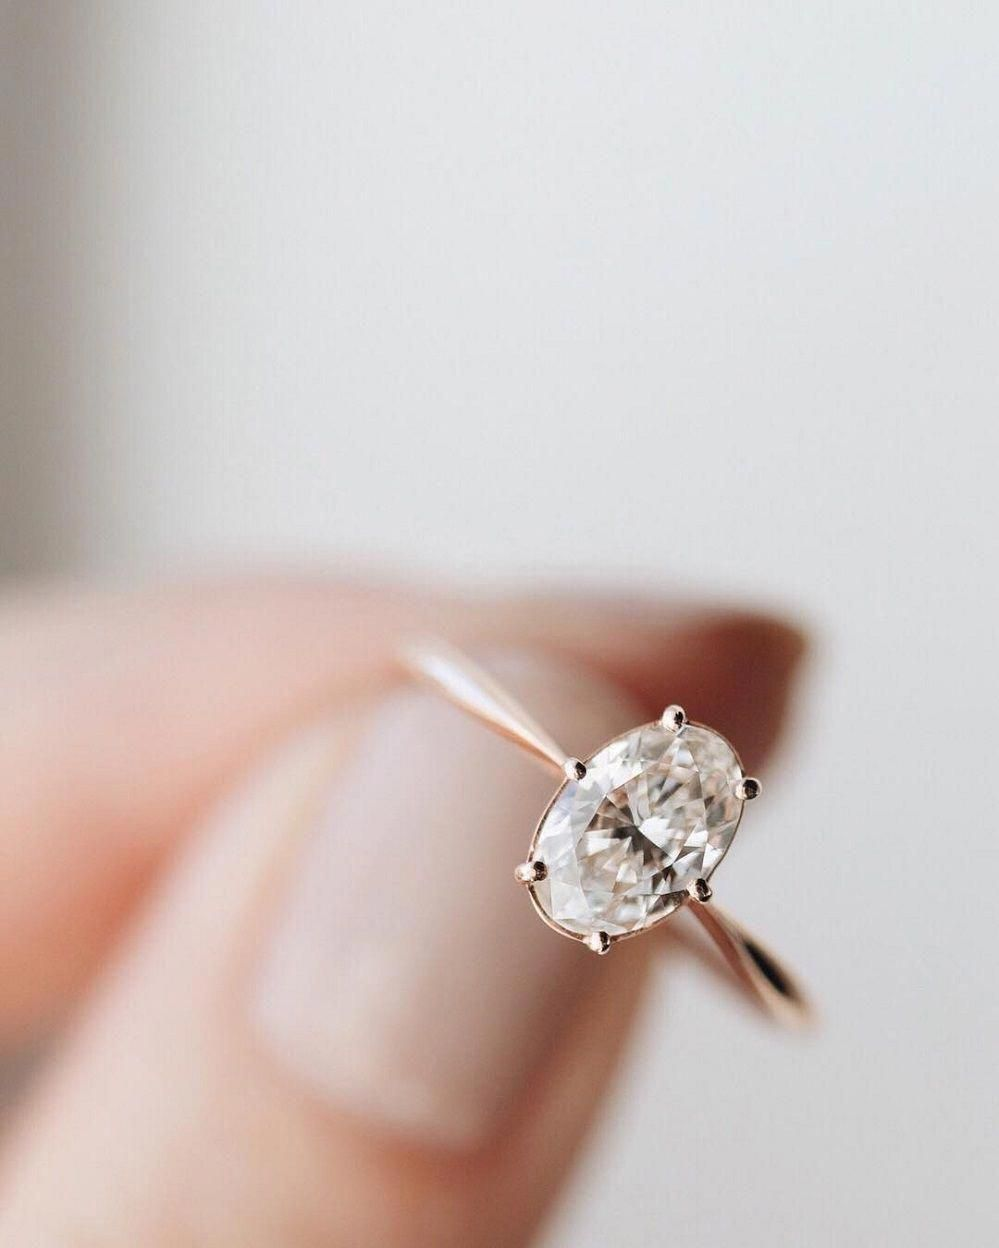 Vintage Engagement Rings On Sale Right Now Vintageengagementrings Solitaire Engagement Ring Unique Diamond Rings Engagement Rings Sale